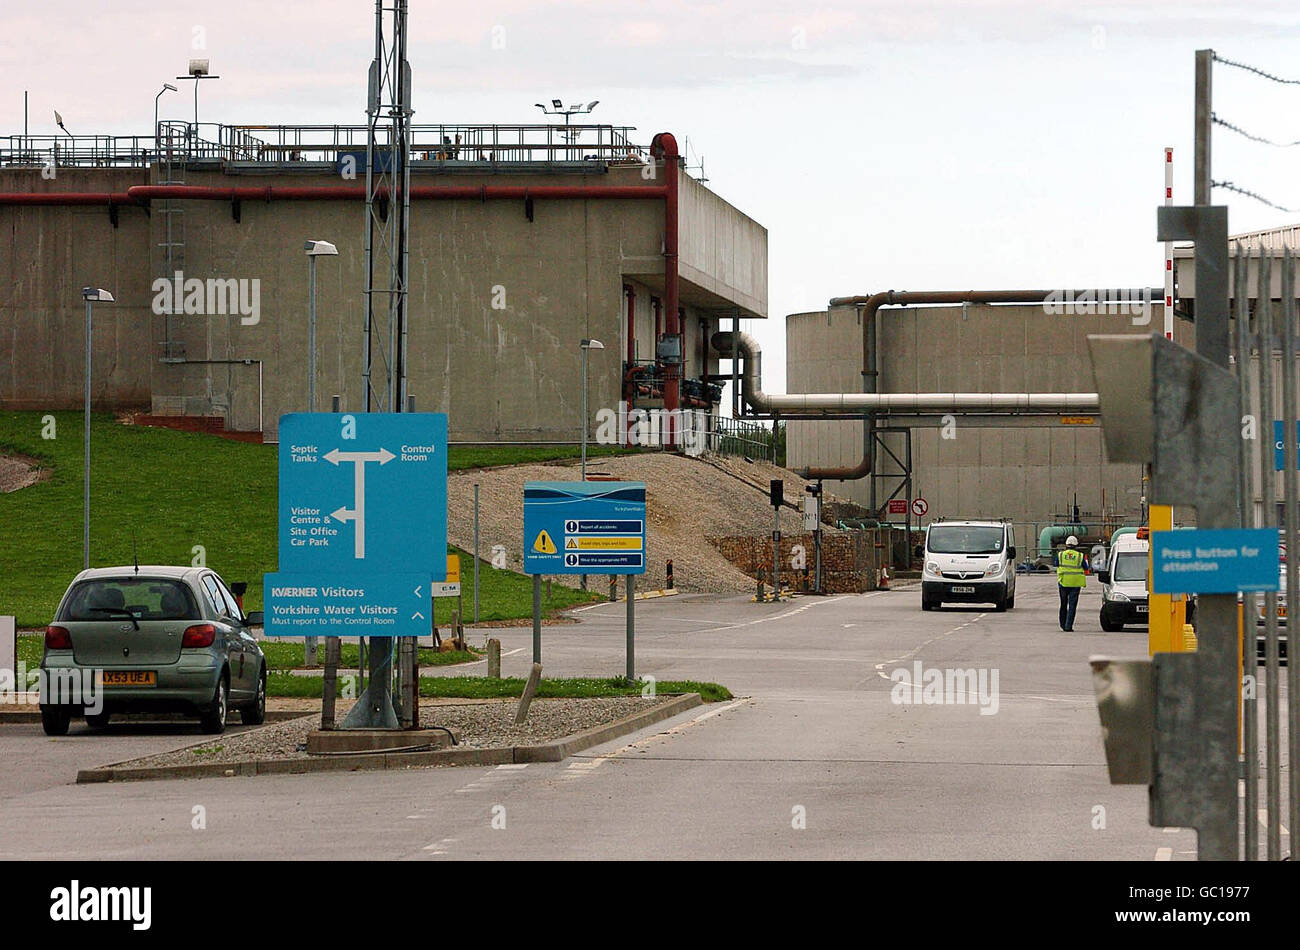 Baby body parts found at sewage treatment works - Stock Image